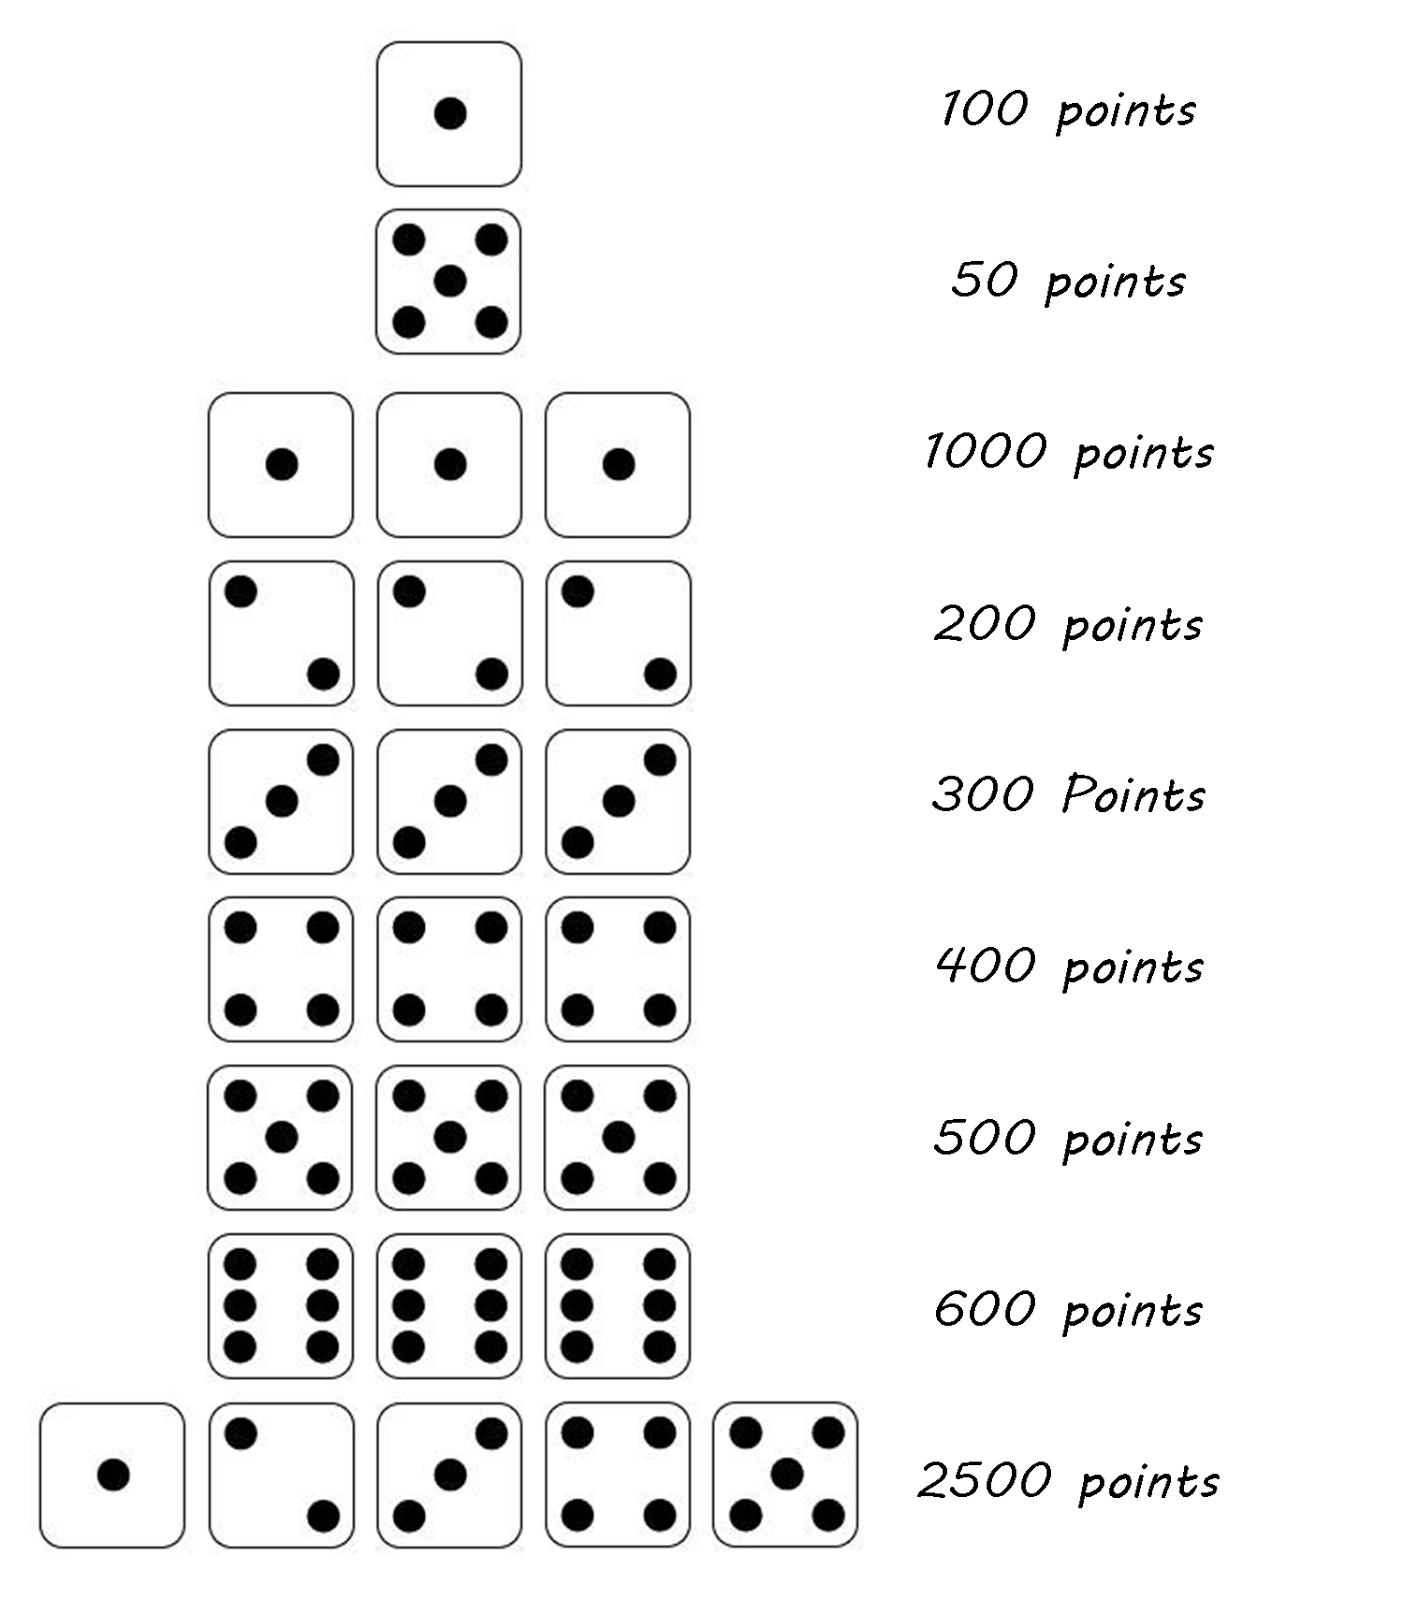 dice game 10000 instructions